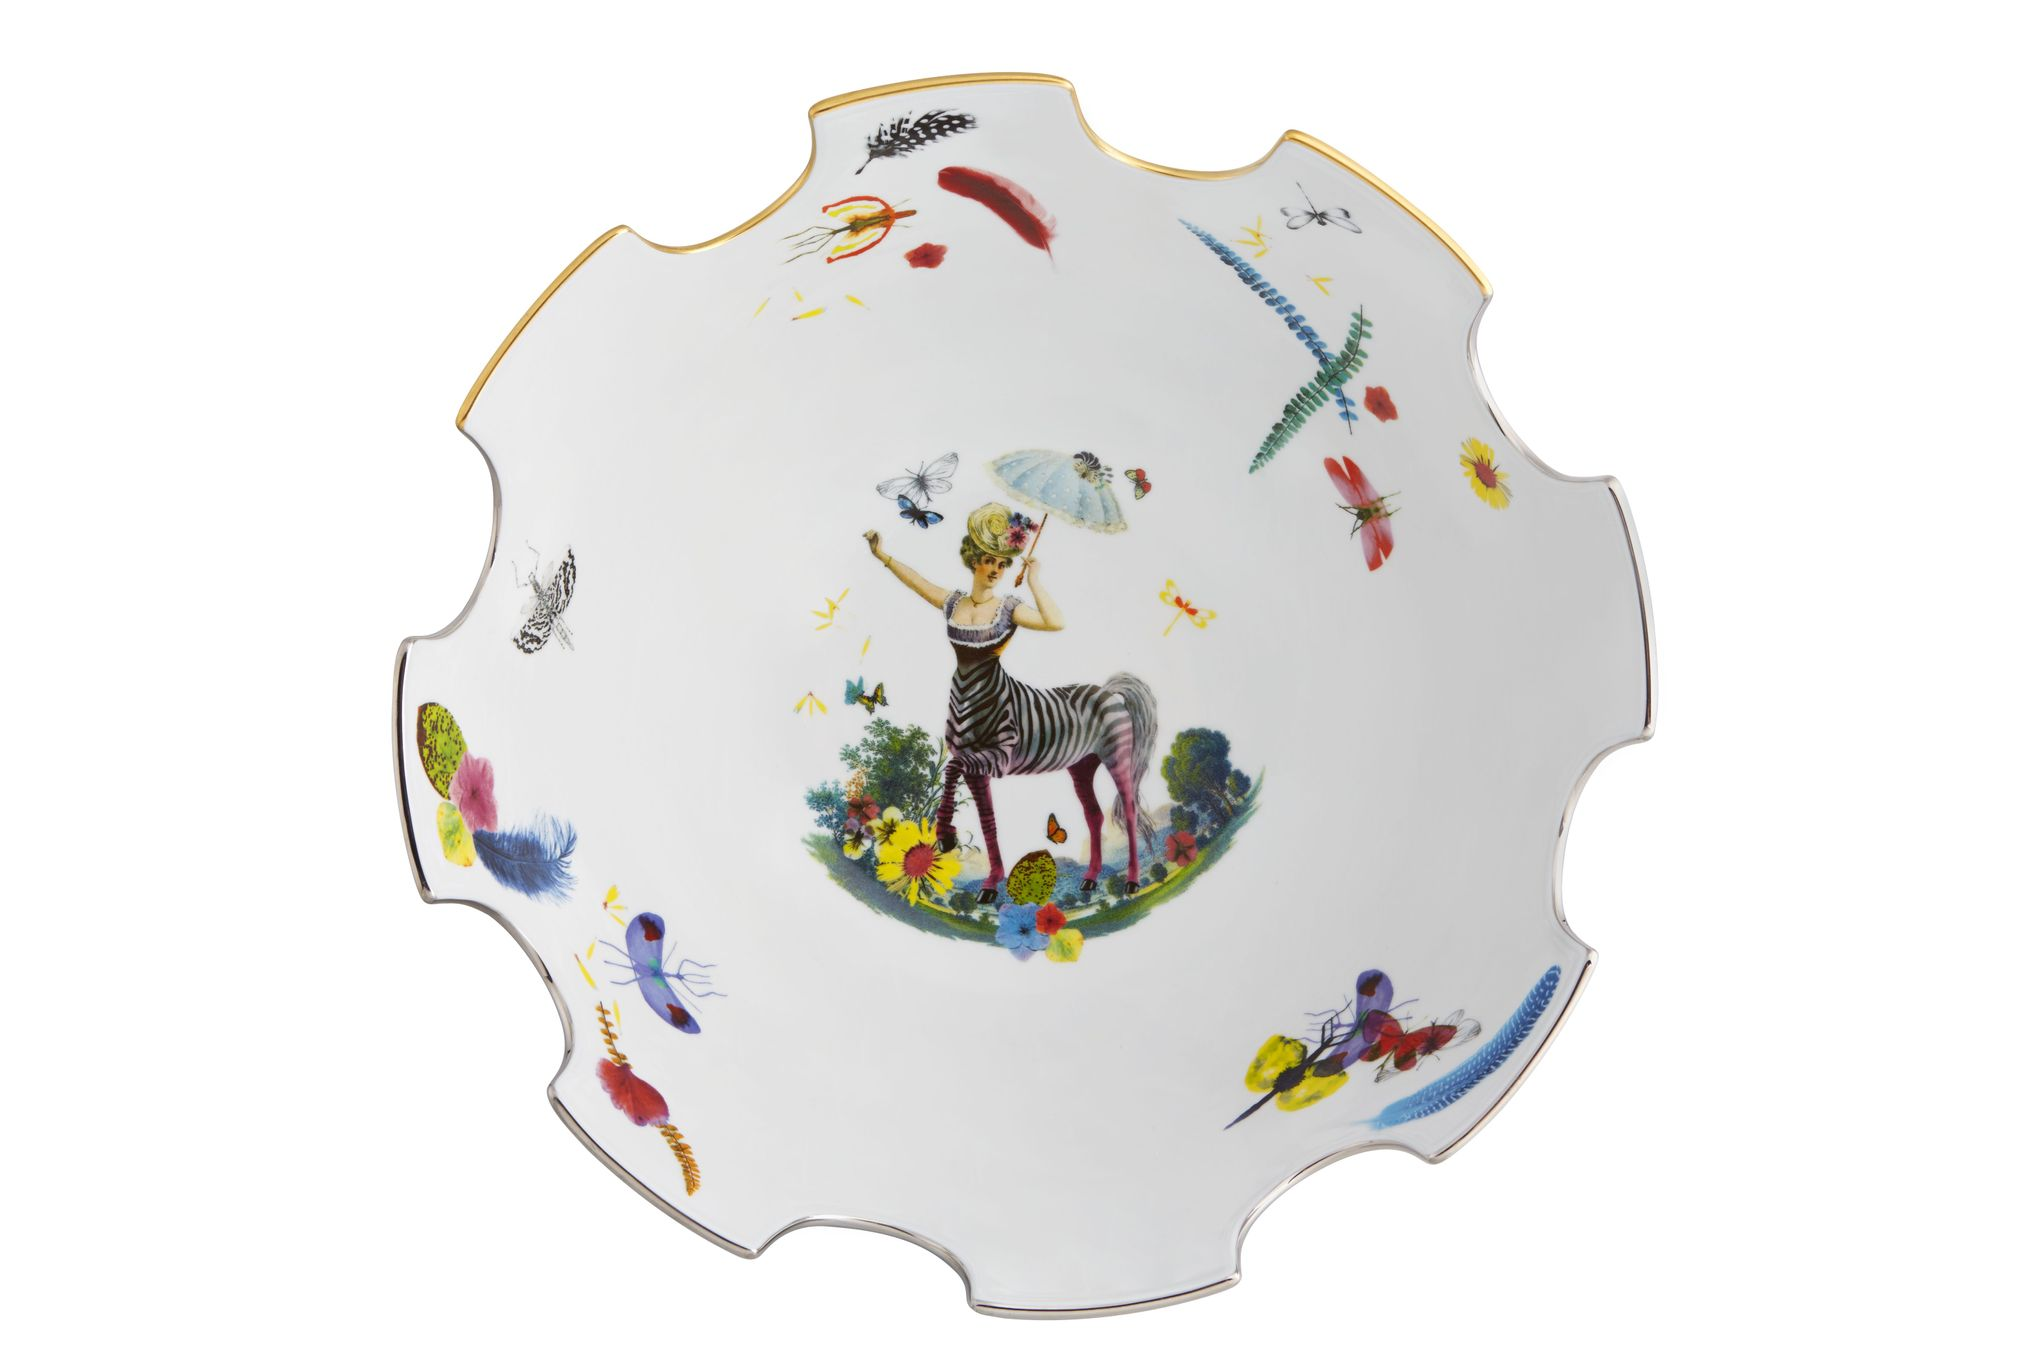 Christian Lacroix Caribe Serving Bowl Gift Boxed 32.1 x 16.5cm thumb 2